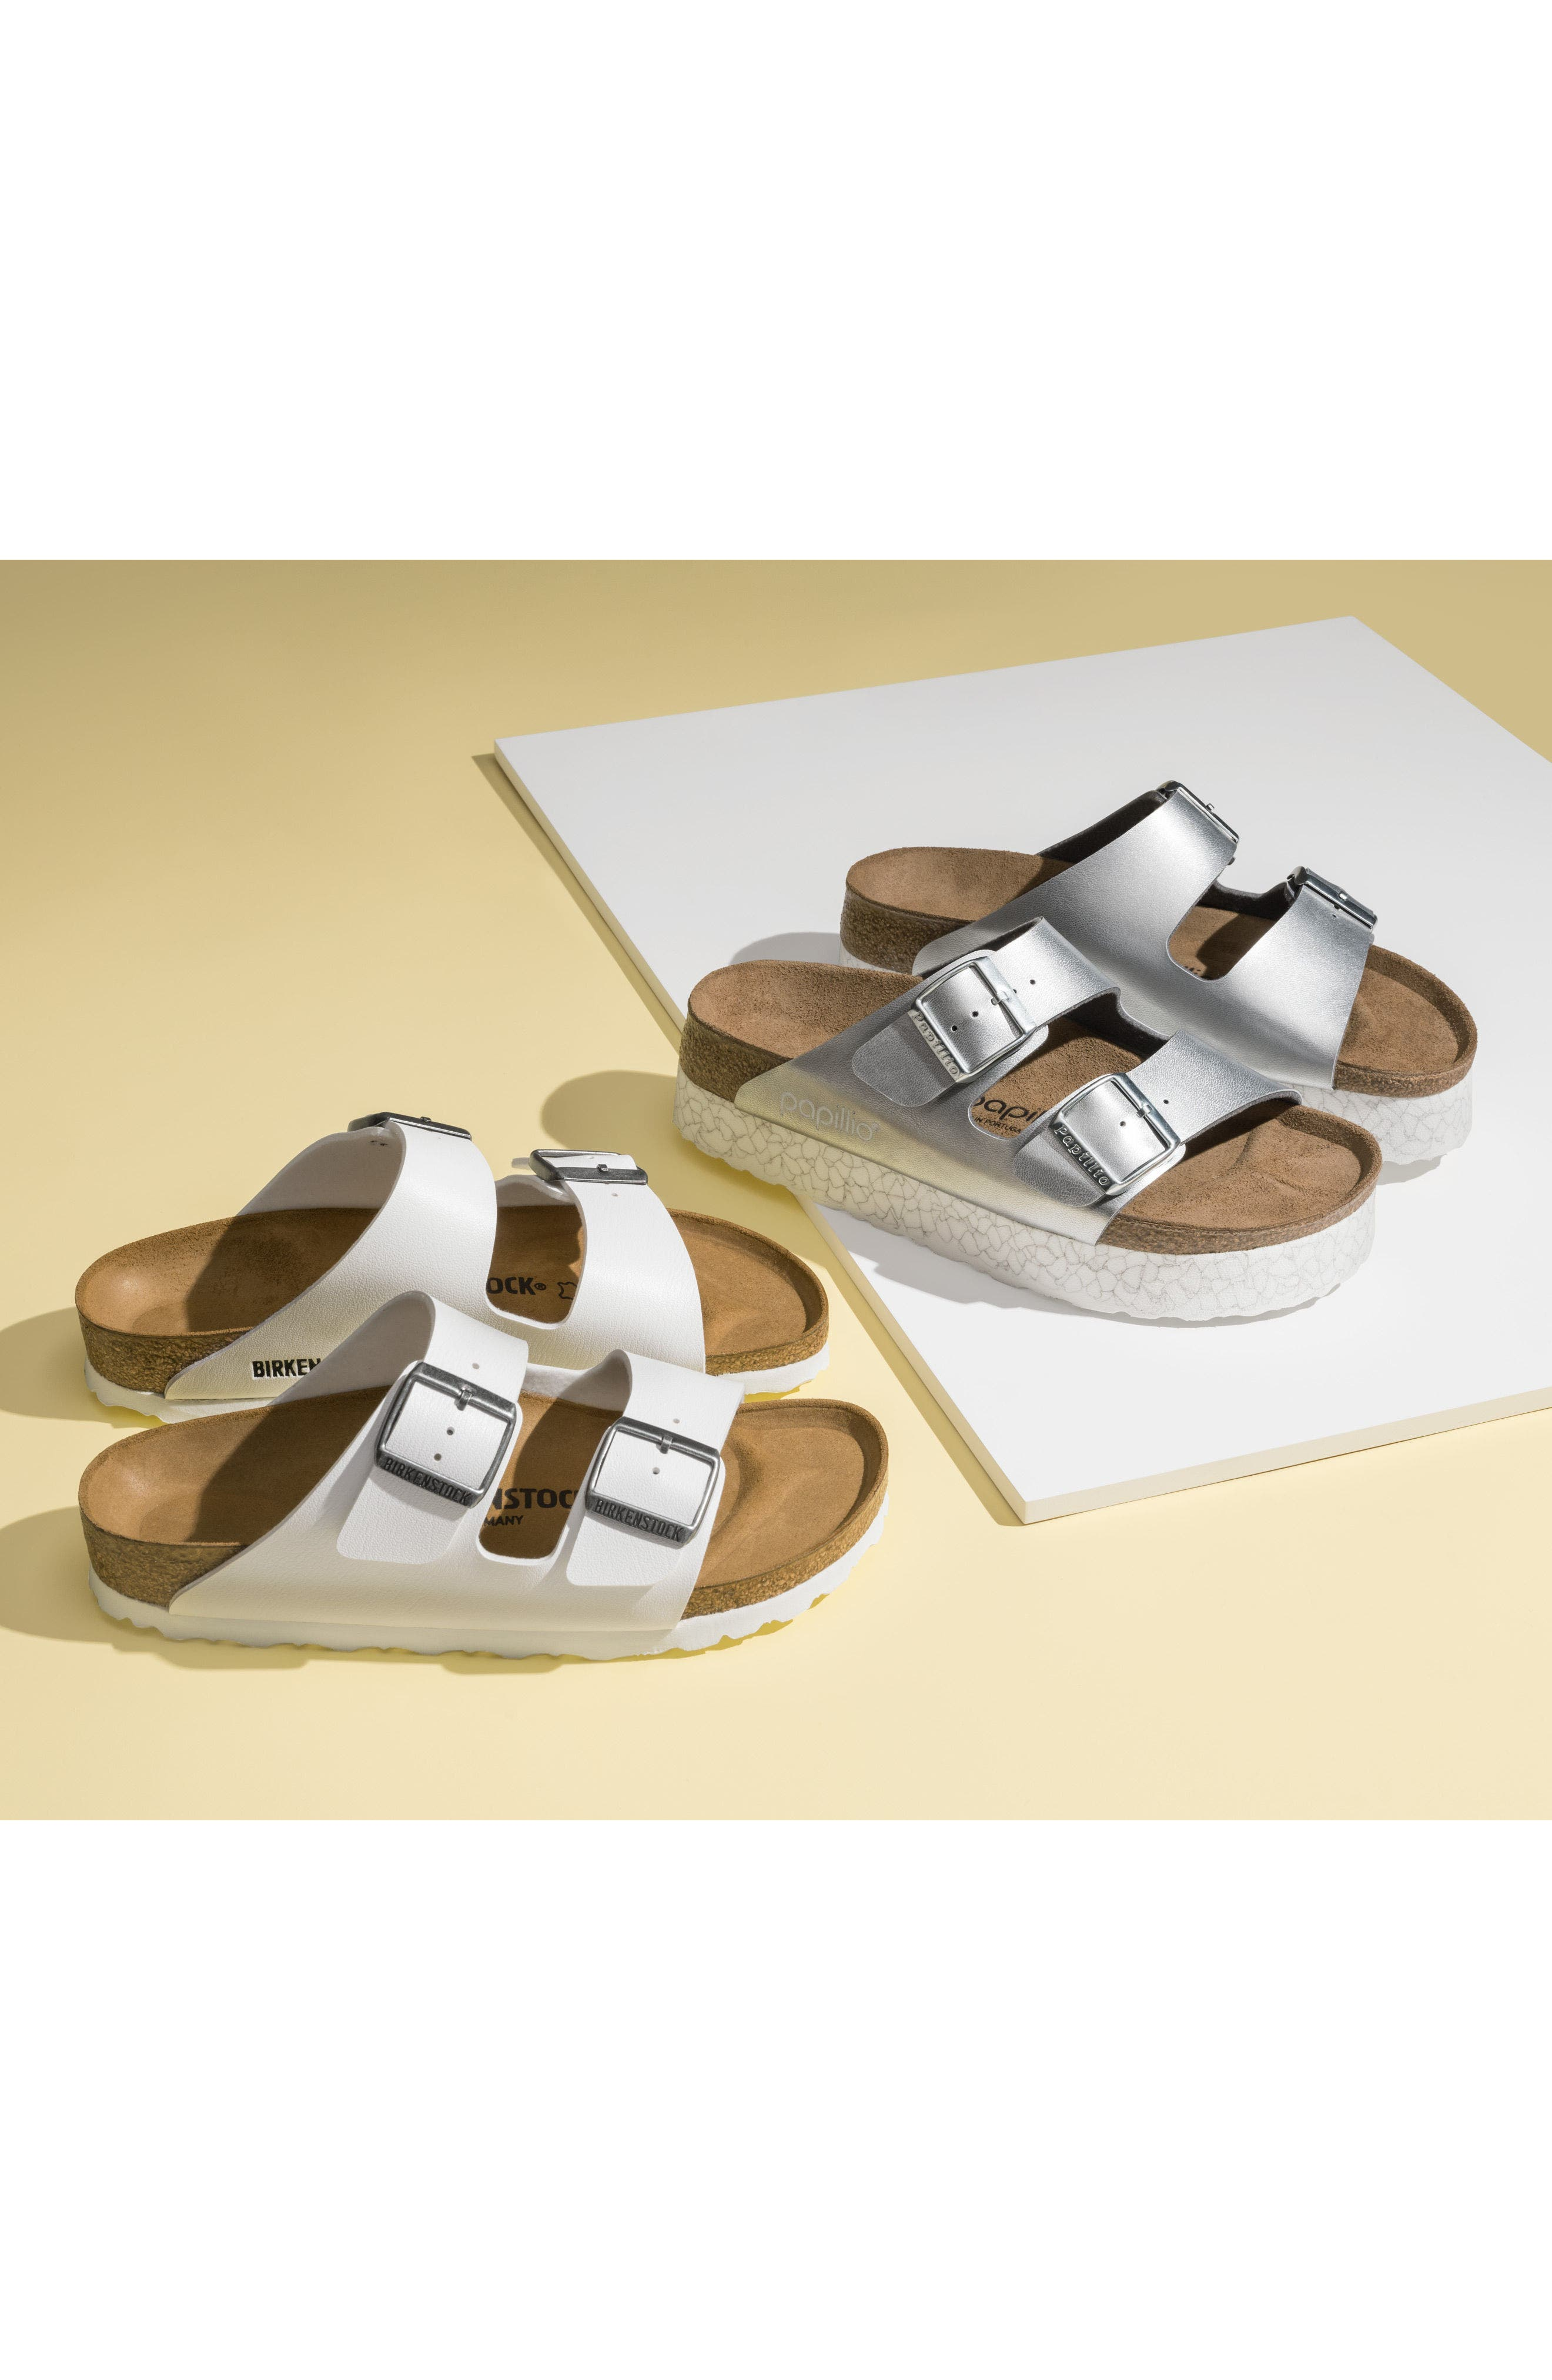 'Arizona' White Birko-Flor Sandal,                             Alternate thumbnail 12, color,                             WHITE SYNTHETIC LEATHER